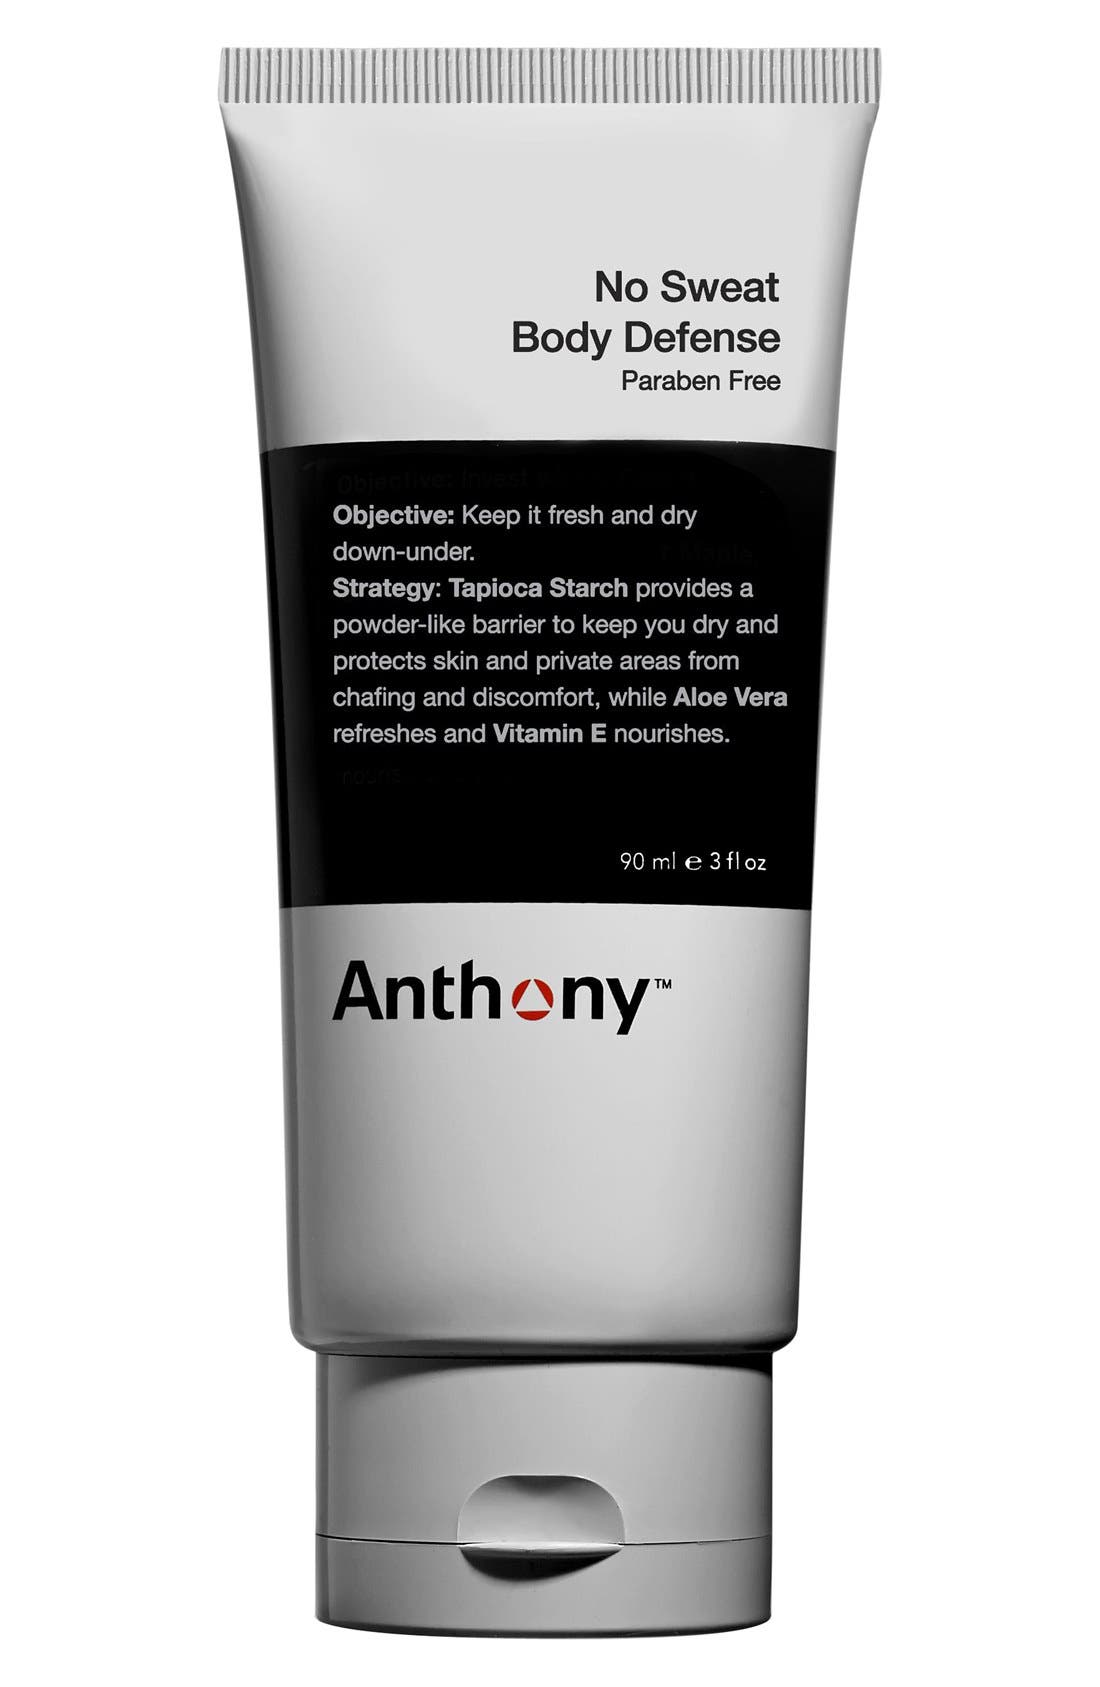 Anthony™ No Sweat Body Defense